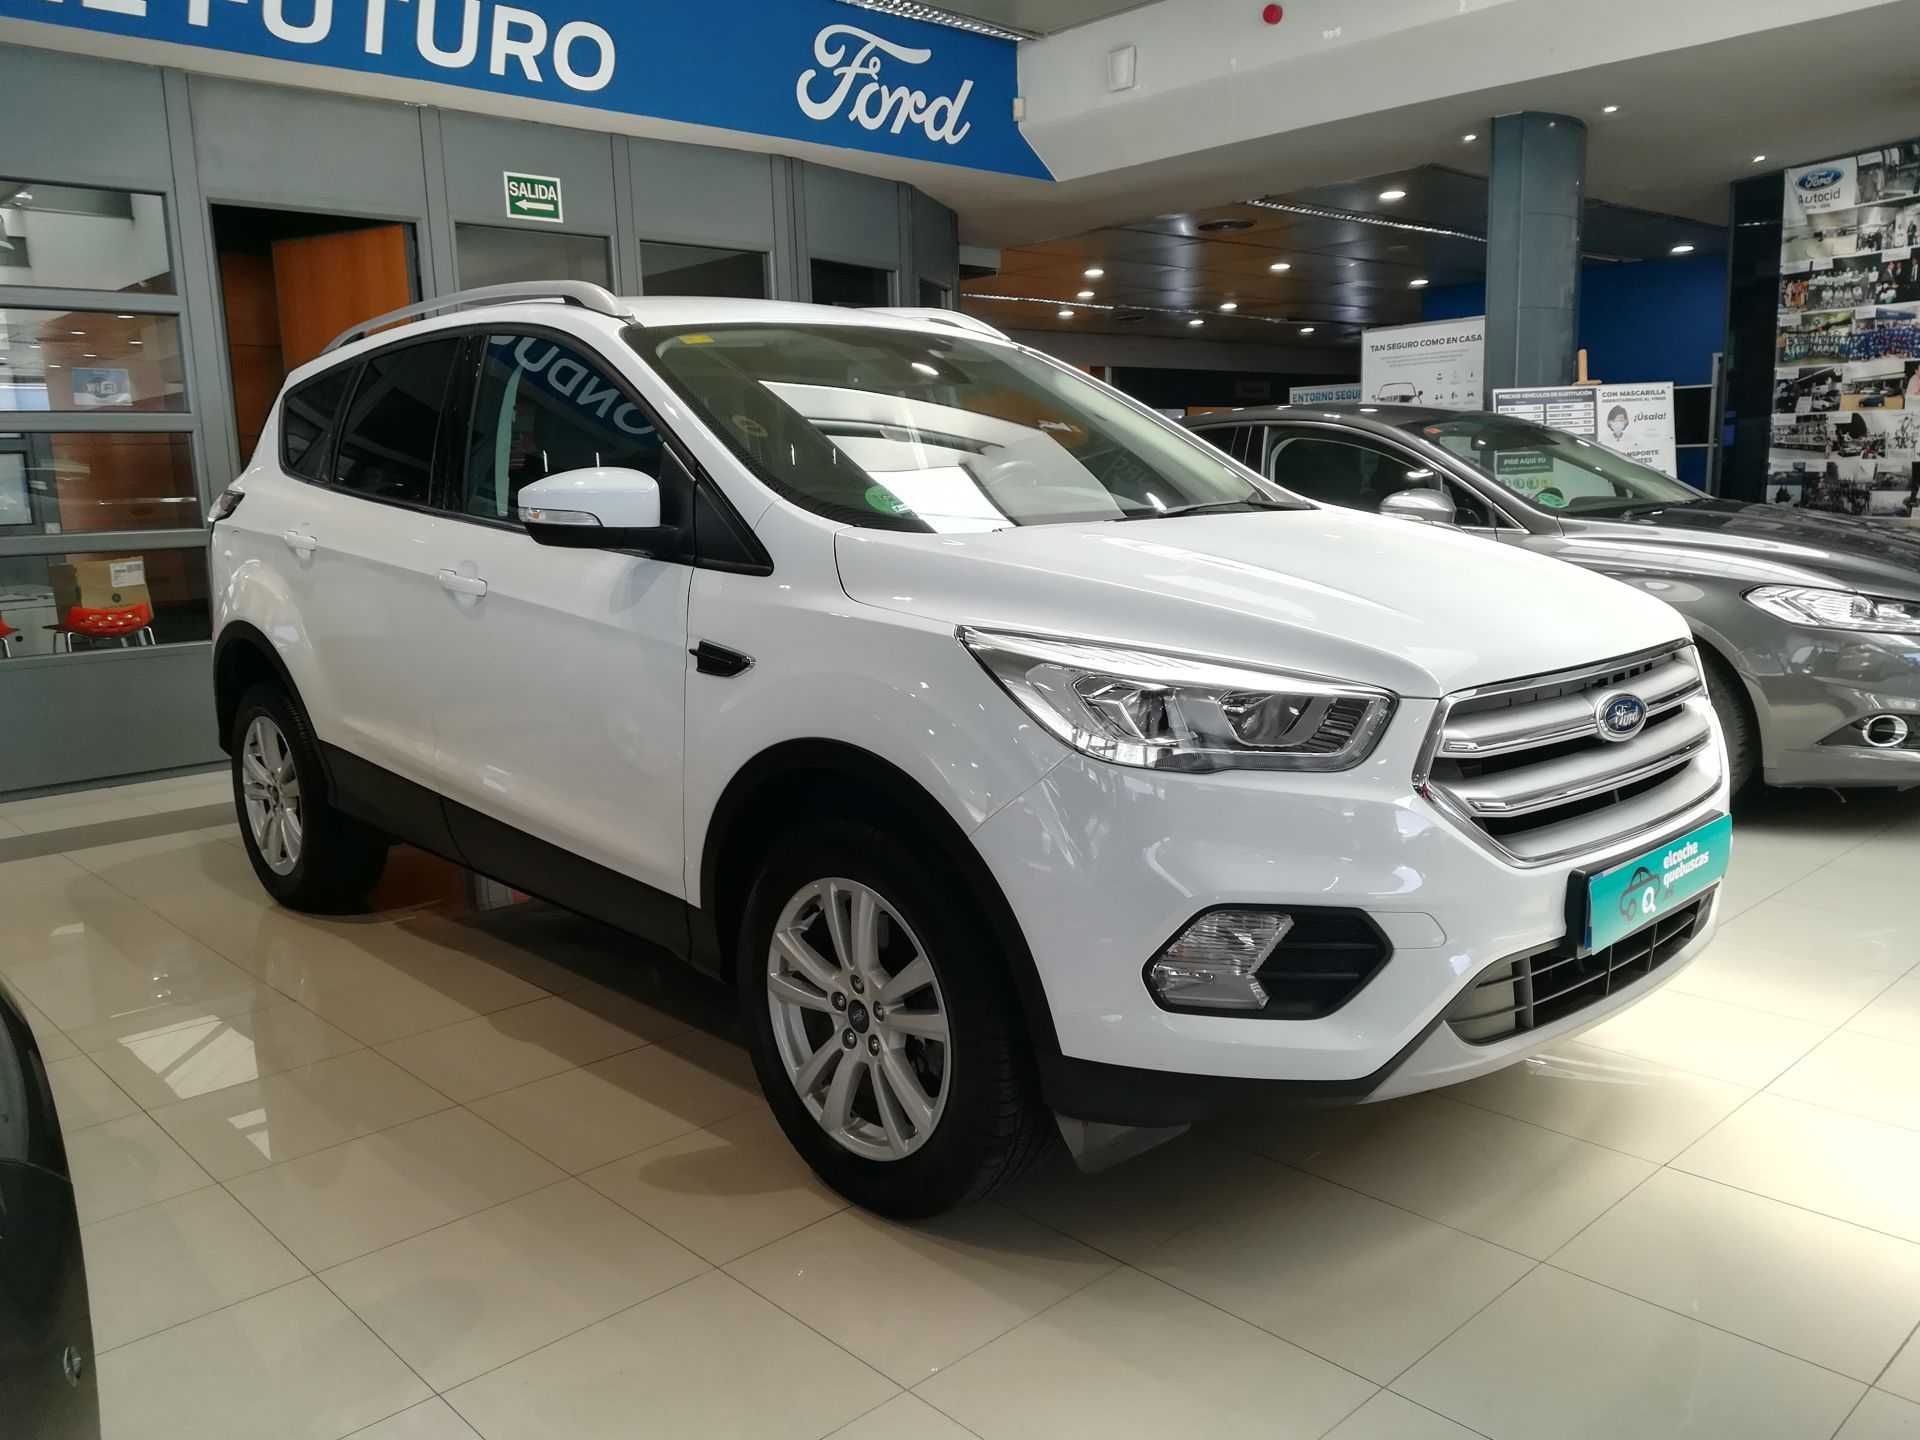 Ford Kuga 1.5 TDCi 88kW 4x2 A-S-S Business